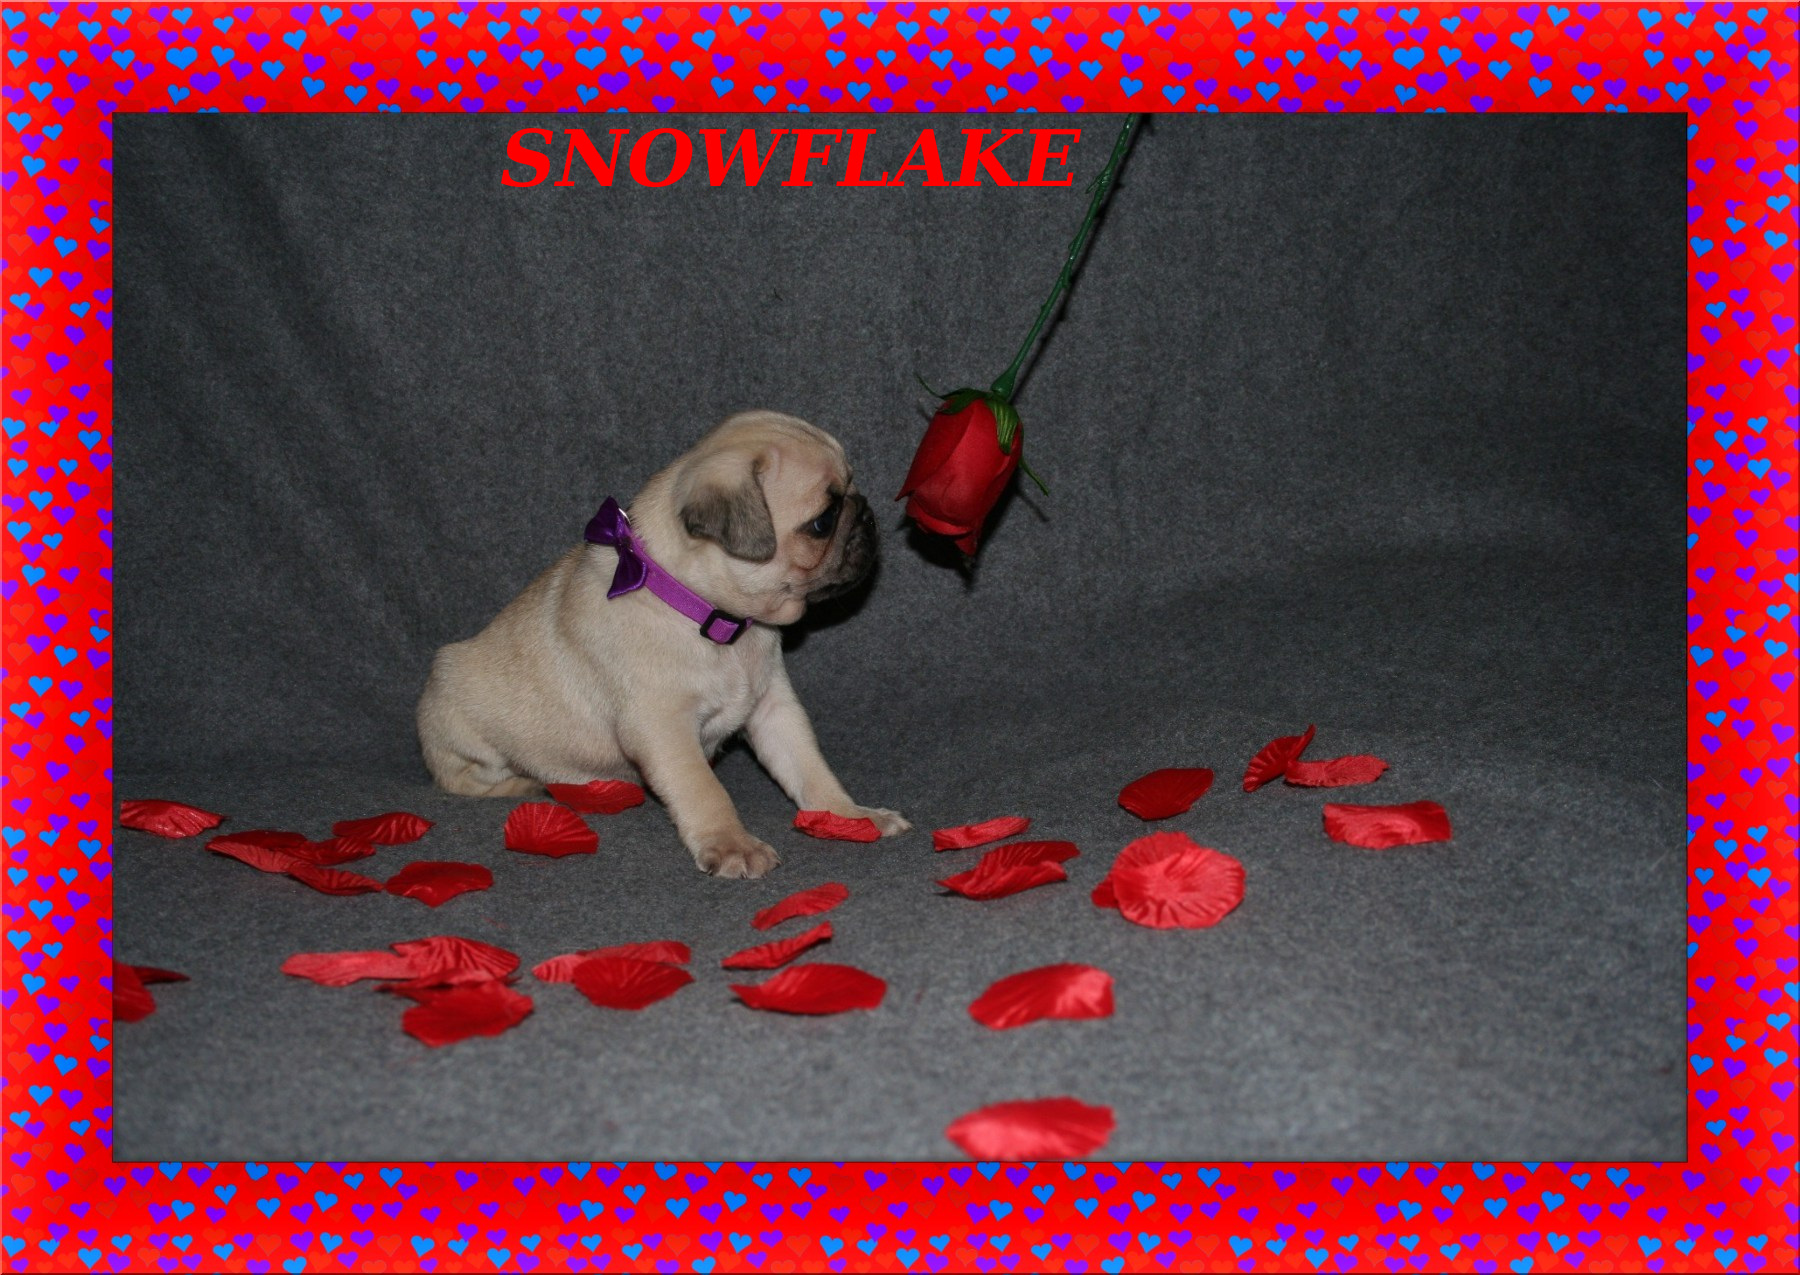 Hearts Picture Frame: https://www.tuxpi.com/photo-effects/heart-frame